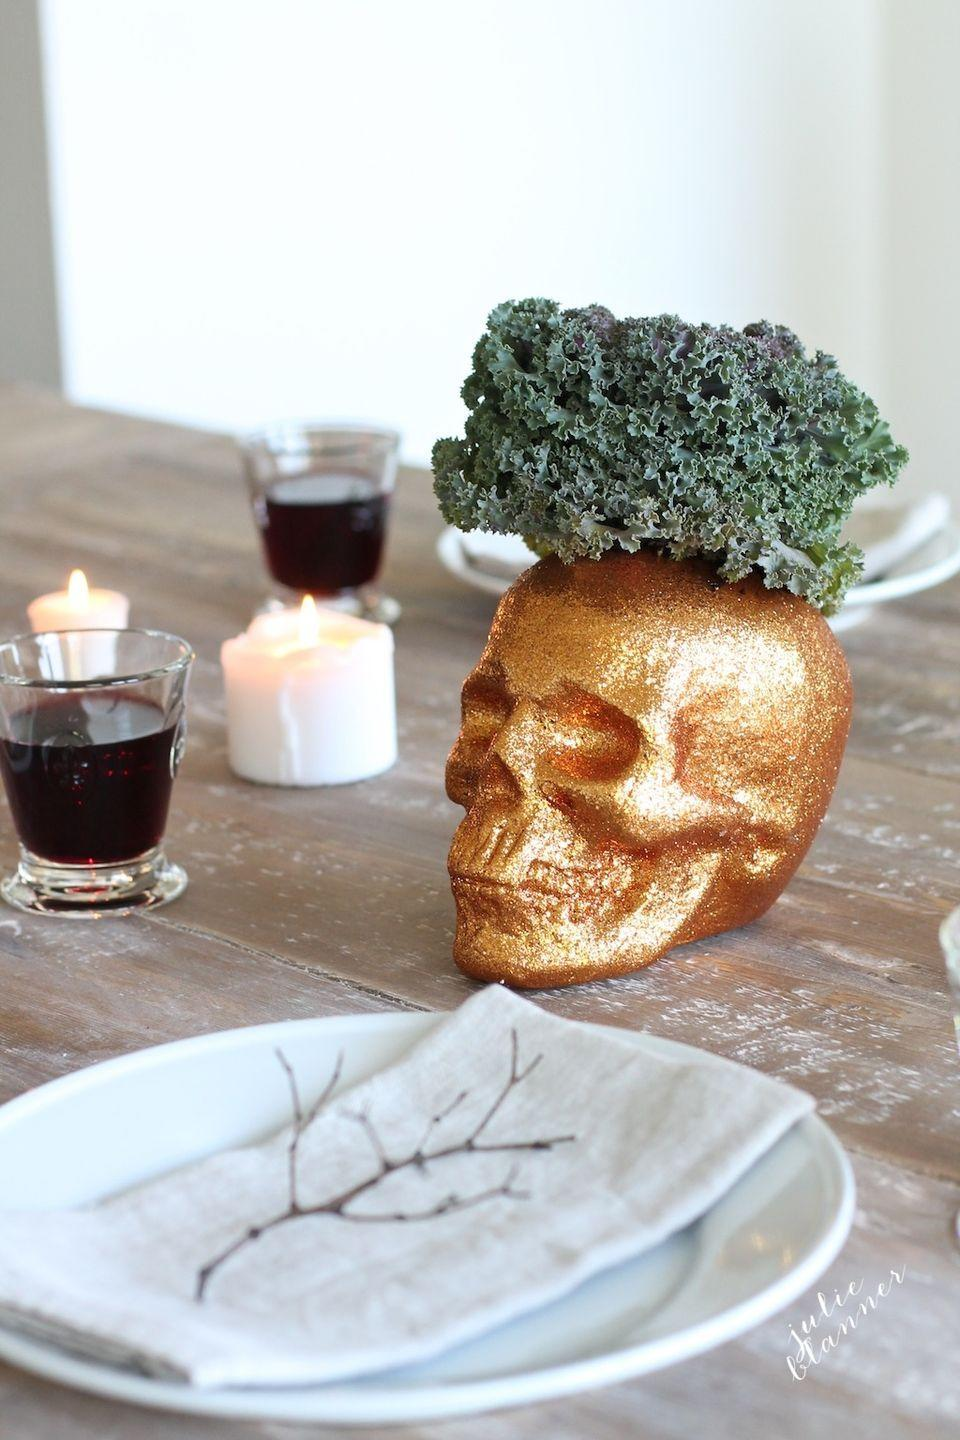 "<p>They're way less scary when you top them with a flower or plant. Maybe equally as scary when stuffed with greens. That's one way to get 'em on the table! See more at <a href=""http://julieblanner.com/halloween-party-table-setting/"" rel=""nofollow noopener"" target=""_blank"" data-ylk=""slk:Julie Blanner"" class=""link rapid-noclick-resp"">Julie Blanner</a>.</p><p><a class=""link rapid-noclick-resp"" href=""https://www.amazon.com/Springfield-Leather-Company-Desert-Glitter/dp/B009SRB95Q/ref=sr_1_5?tag=syn-yahoo-20&ascsubtag=%5Bartid%7C10057.g.2554%5Bsrc%7Cyahoo-us"" rel=""nofollow noopener"" target=""_blank"" data-ylk=""slk:BUY NOW"">BUY NOW</a> <strong><em>Gold Glitter Paint, $8</em></strong></p>"